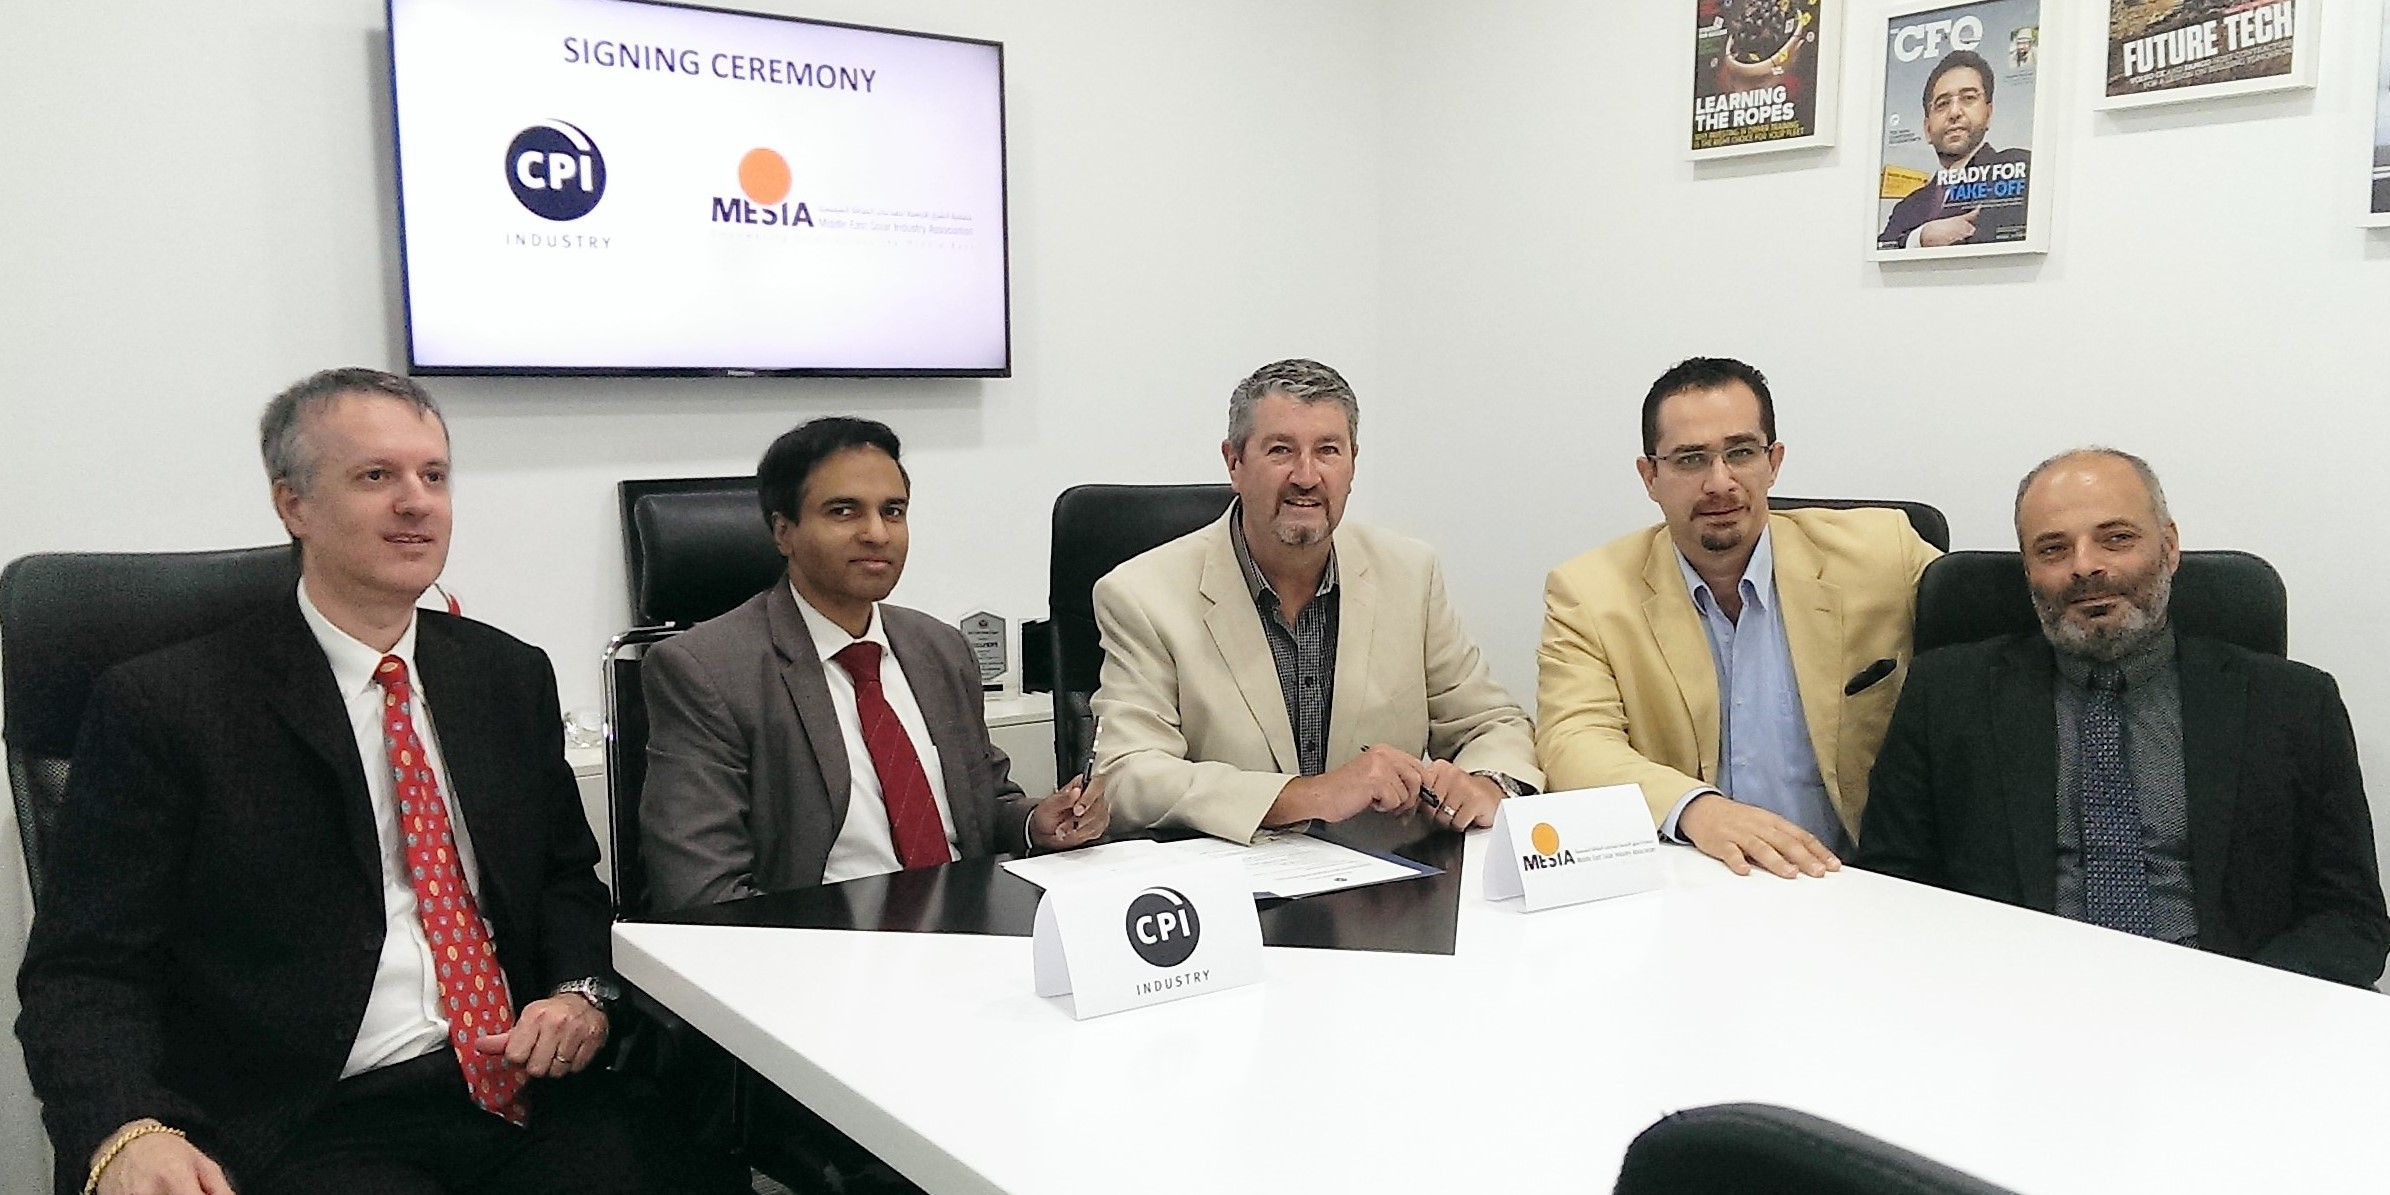 L-R: Frederic Paille, Managing Director, CPI Industry; B Surendar, Editorial Director, CPI Industry; James Stewart, Vice-President, MESIA; Hadi Tahboub, President, MESIA and Dr. Toufic Hawat, Research Director, MESIA